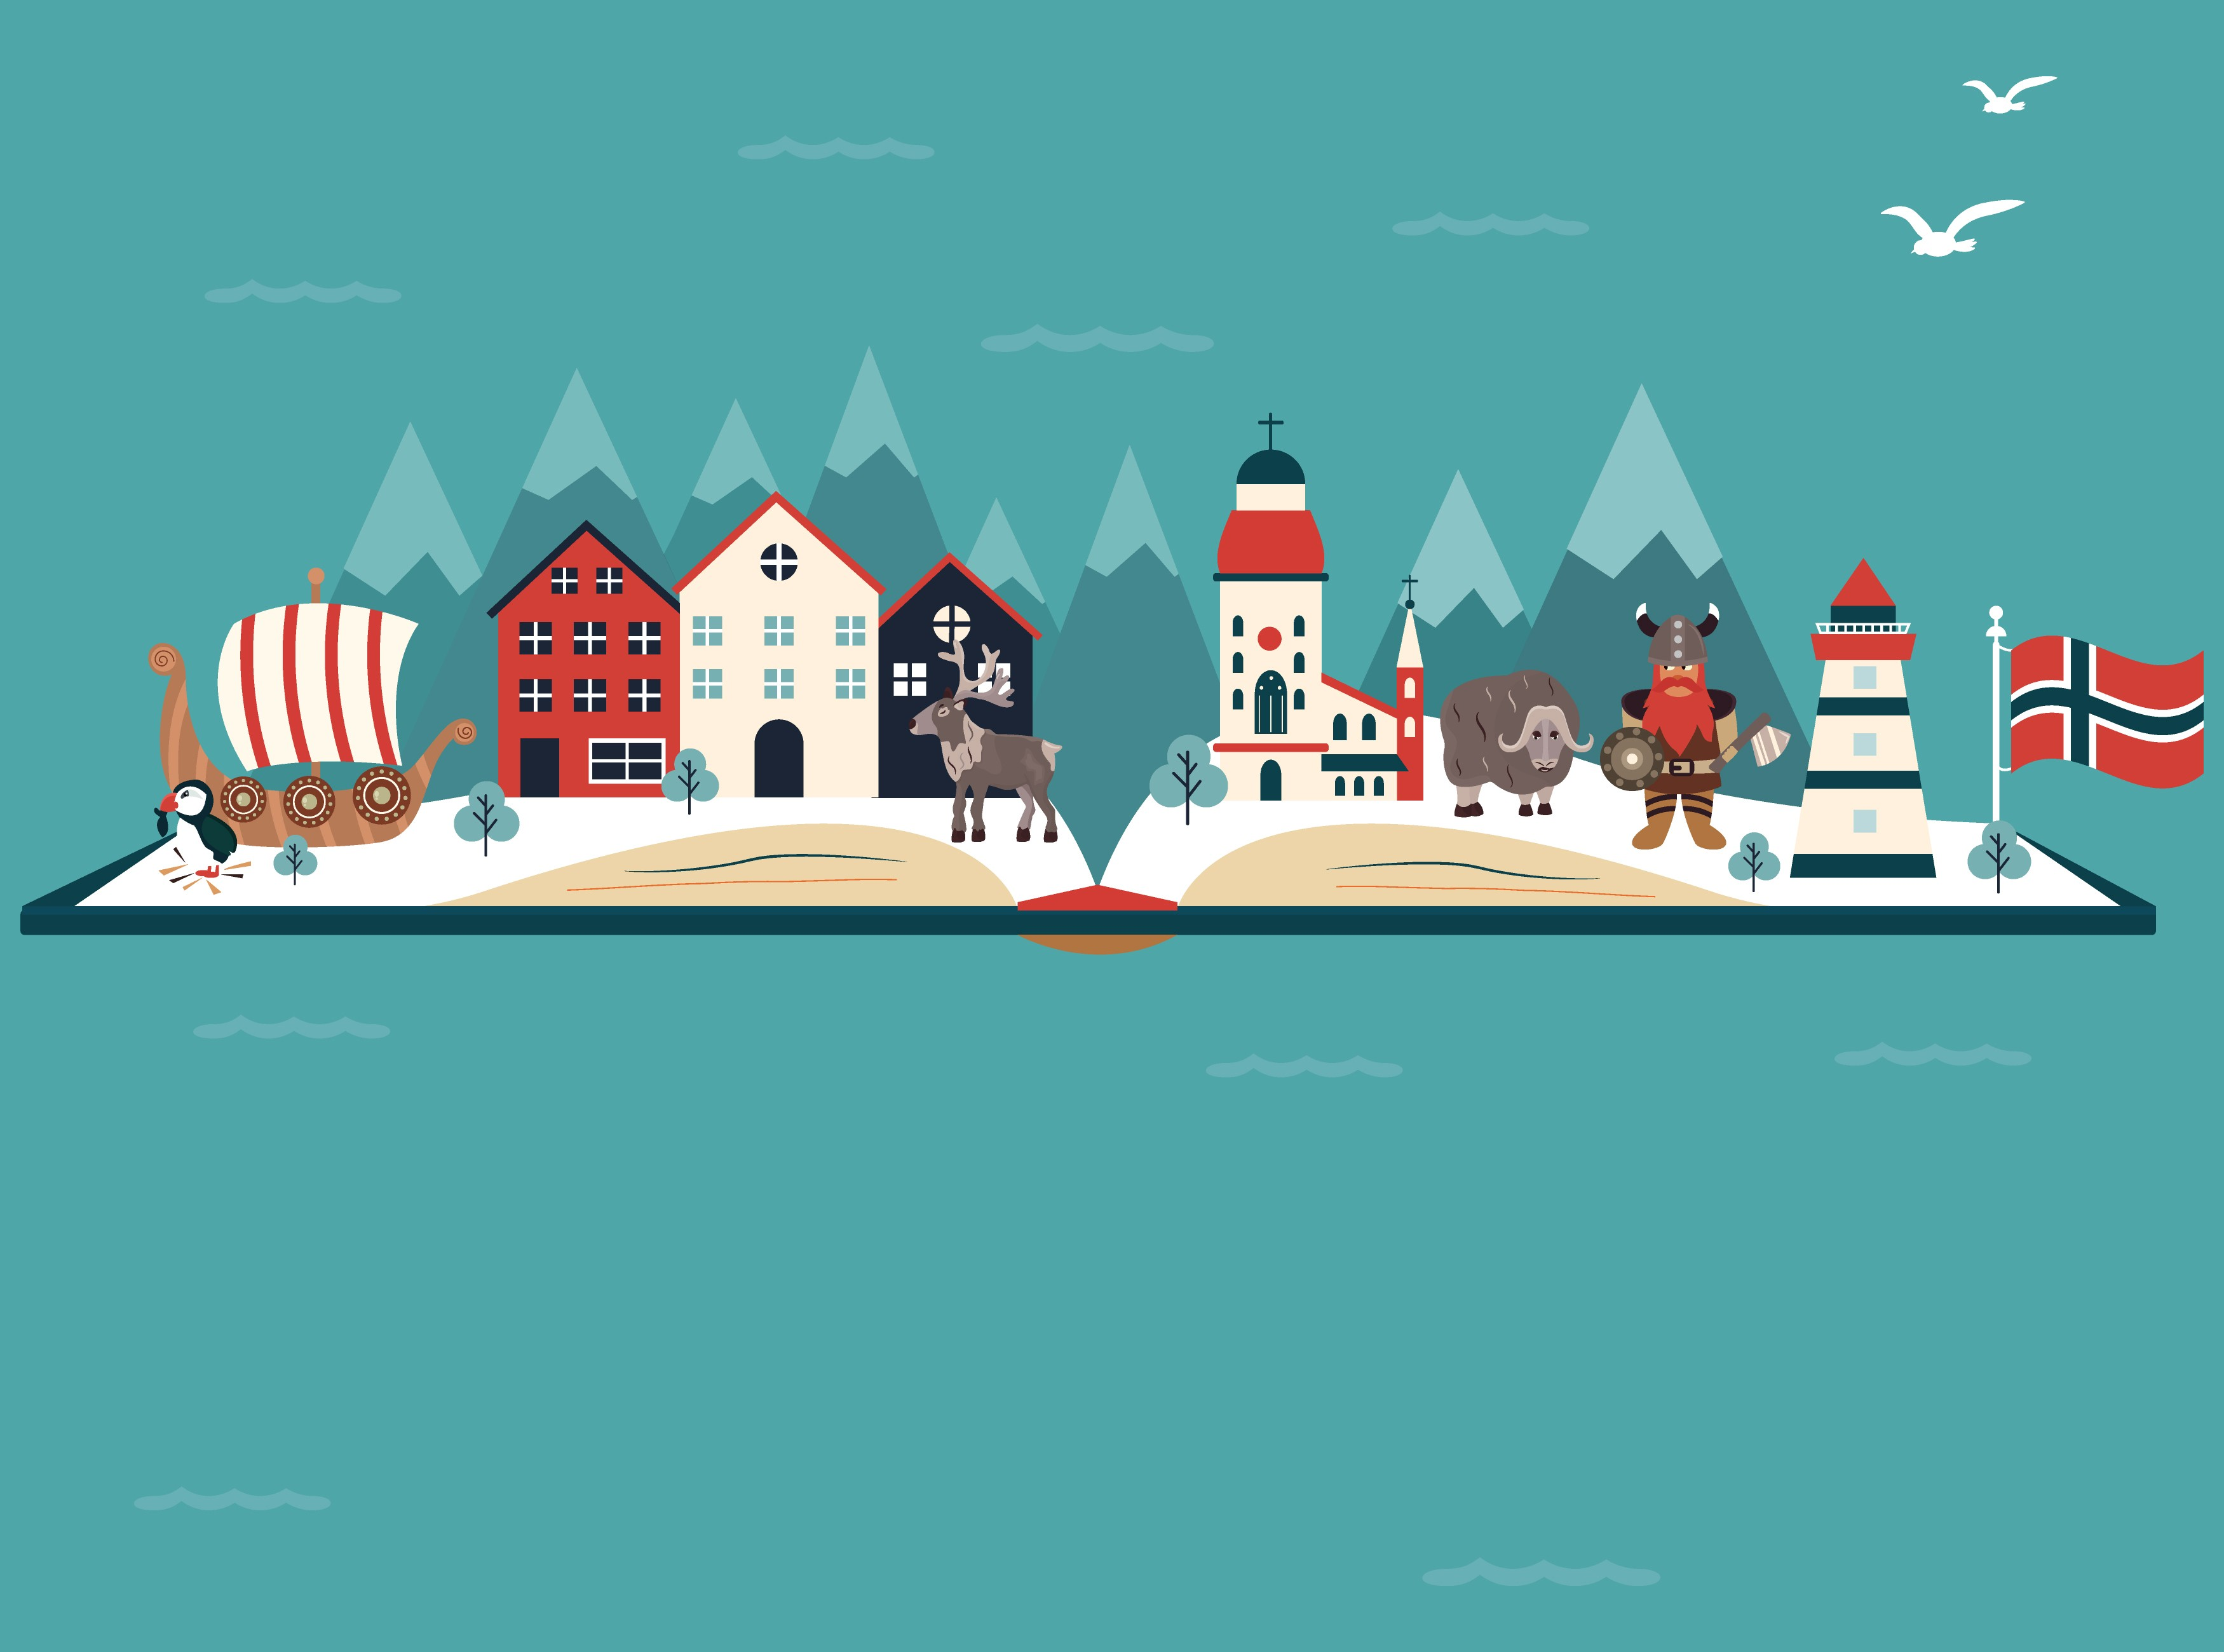 Geography Norway Level 1 Activity For Kids